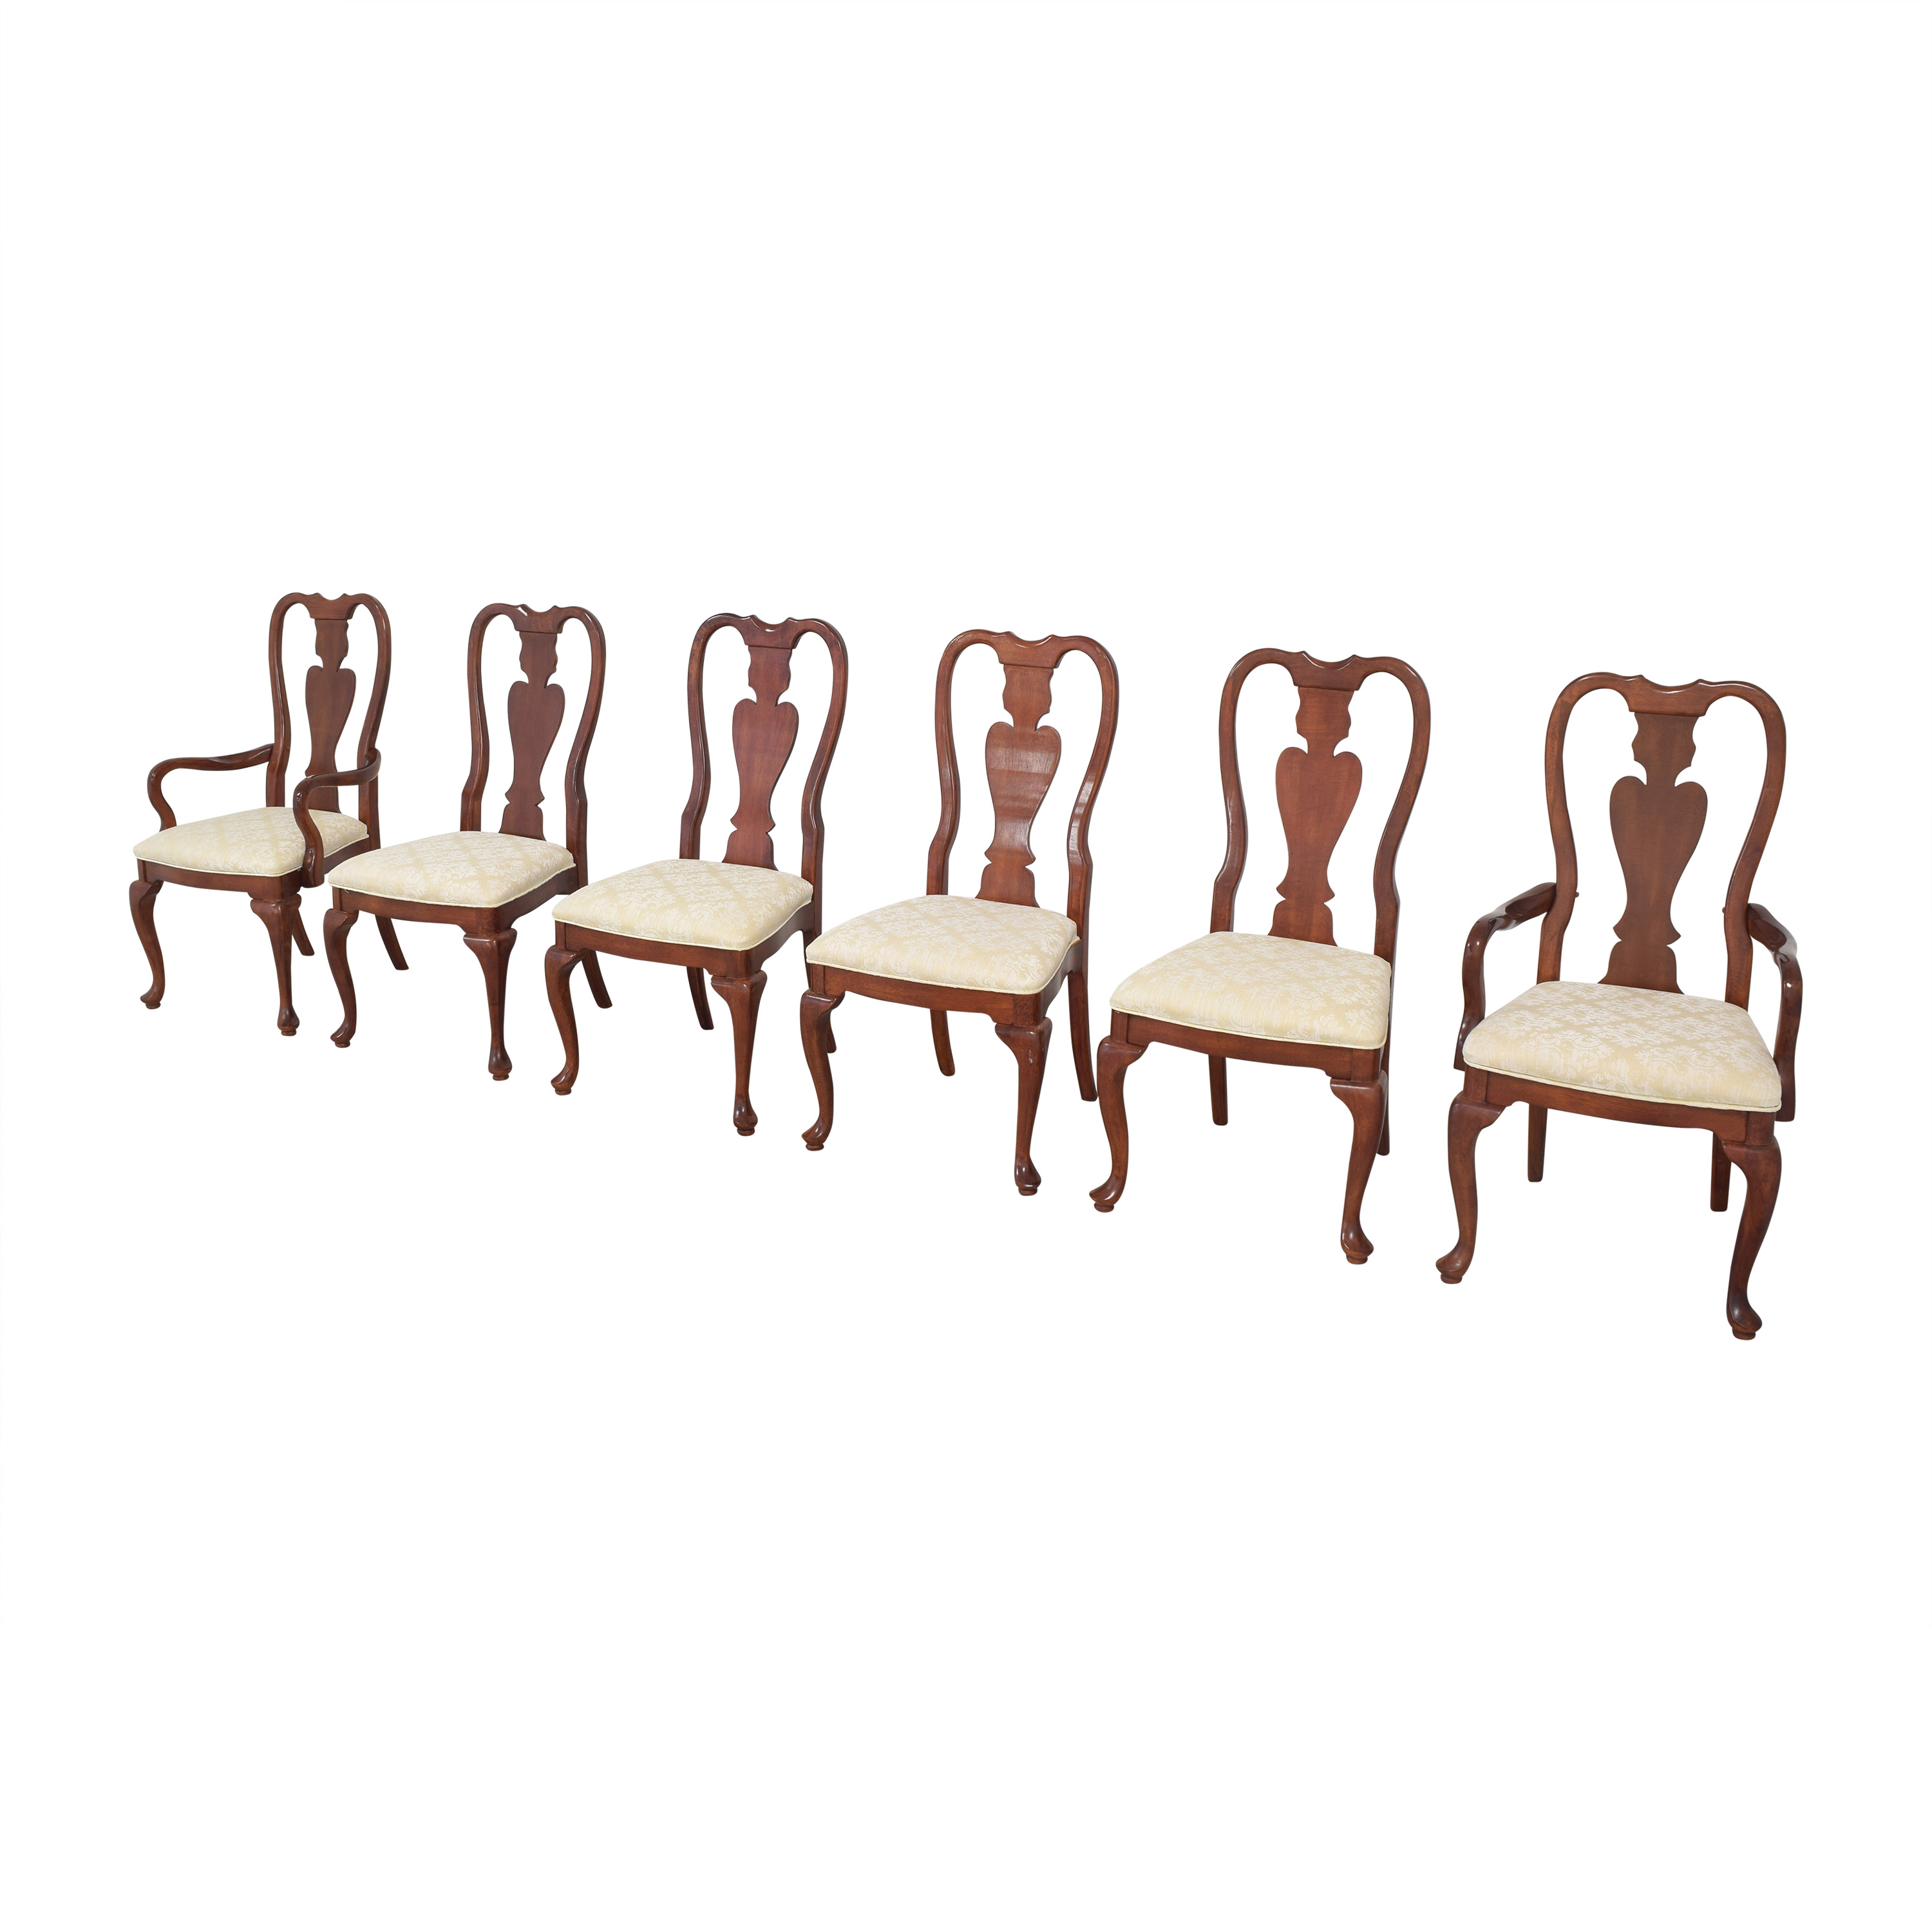 Universal Furniture Universal Furniture Queen Anne Dining Chairs second hand